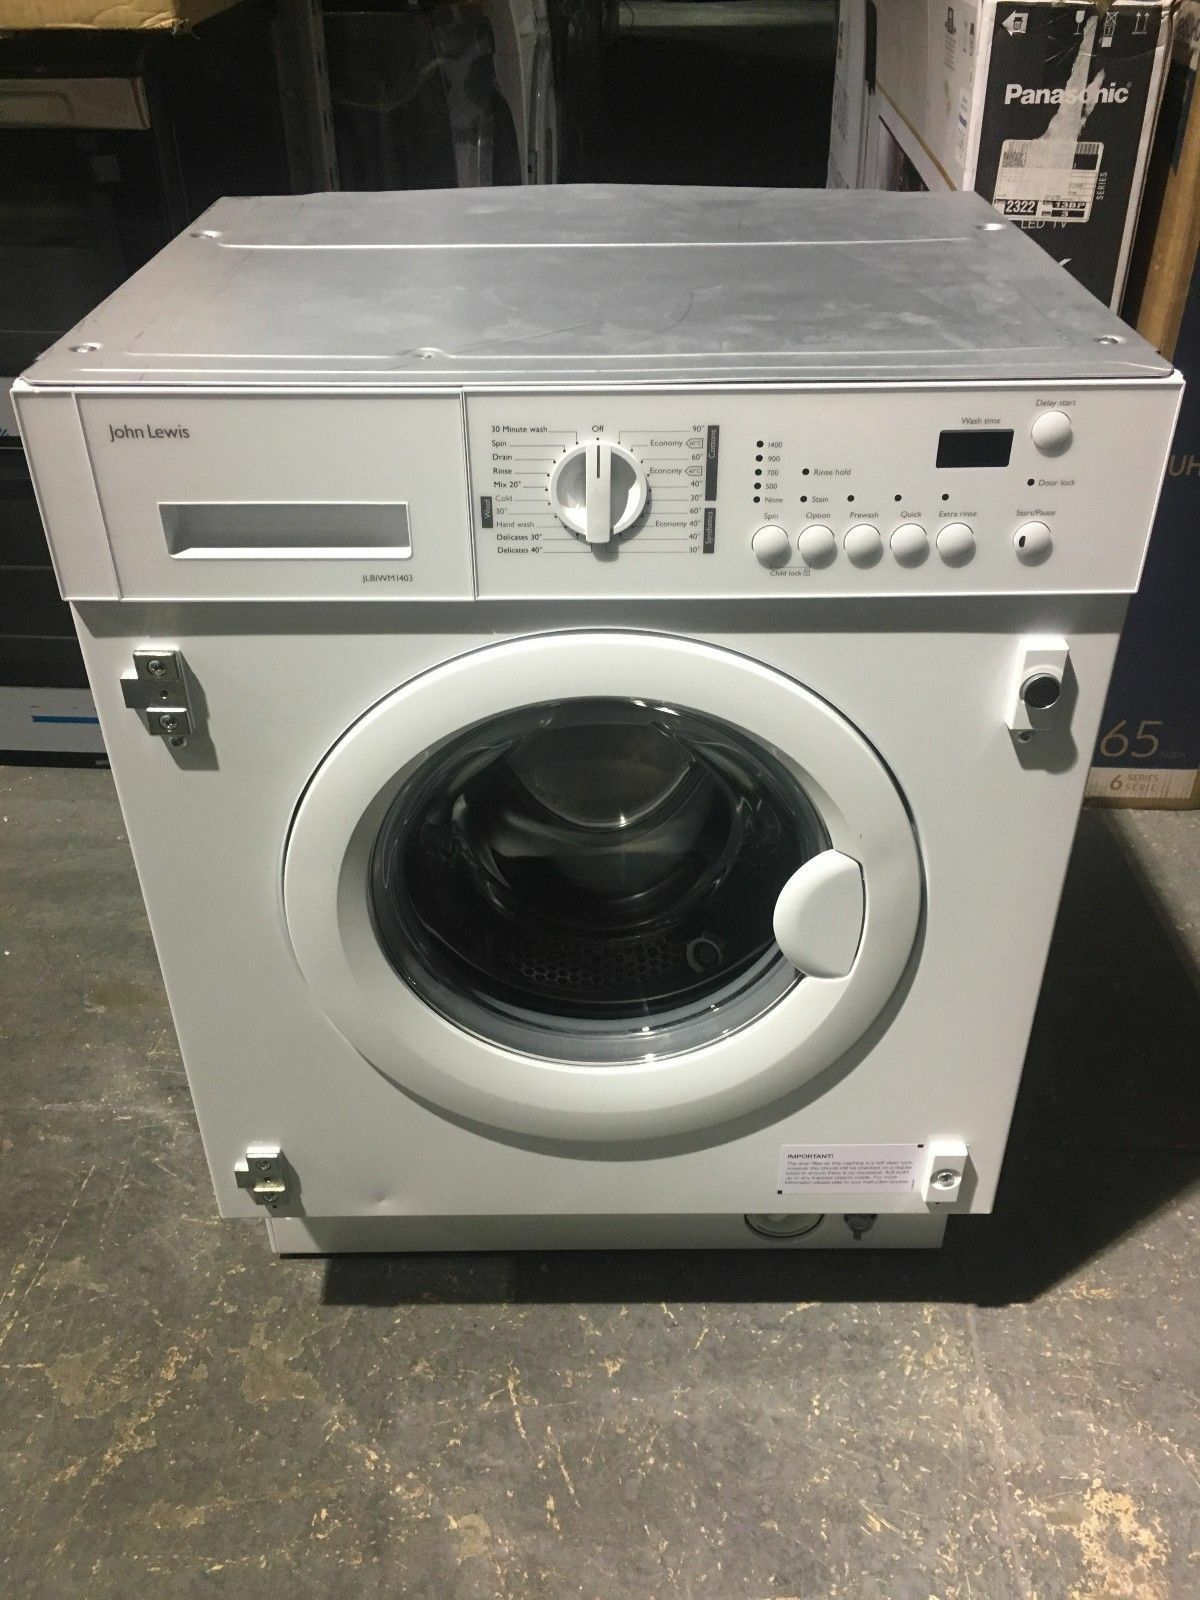 b264a4f9763 John Lewis JLBIWM1403 Integrated Washing Machine